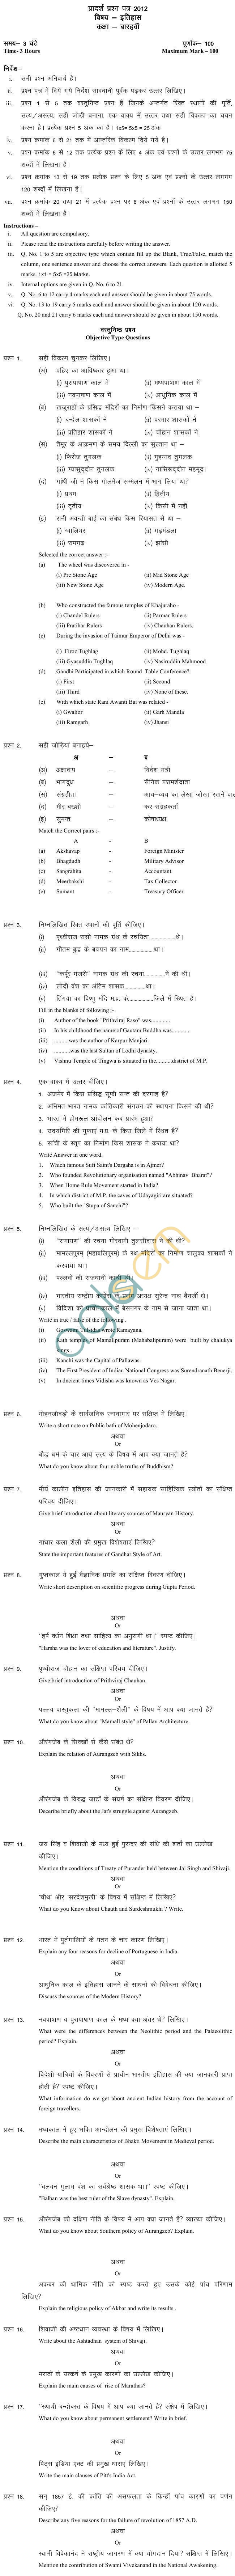 MP Board Class XII History Model Questions & Answers - Set 1